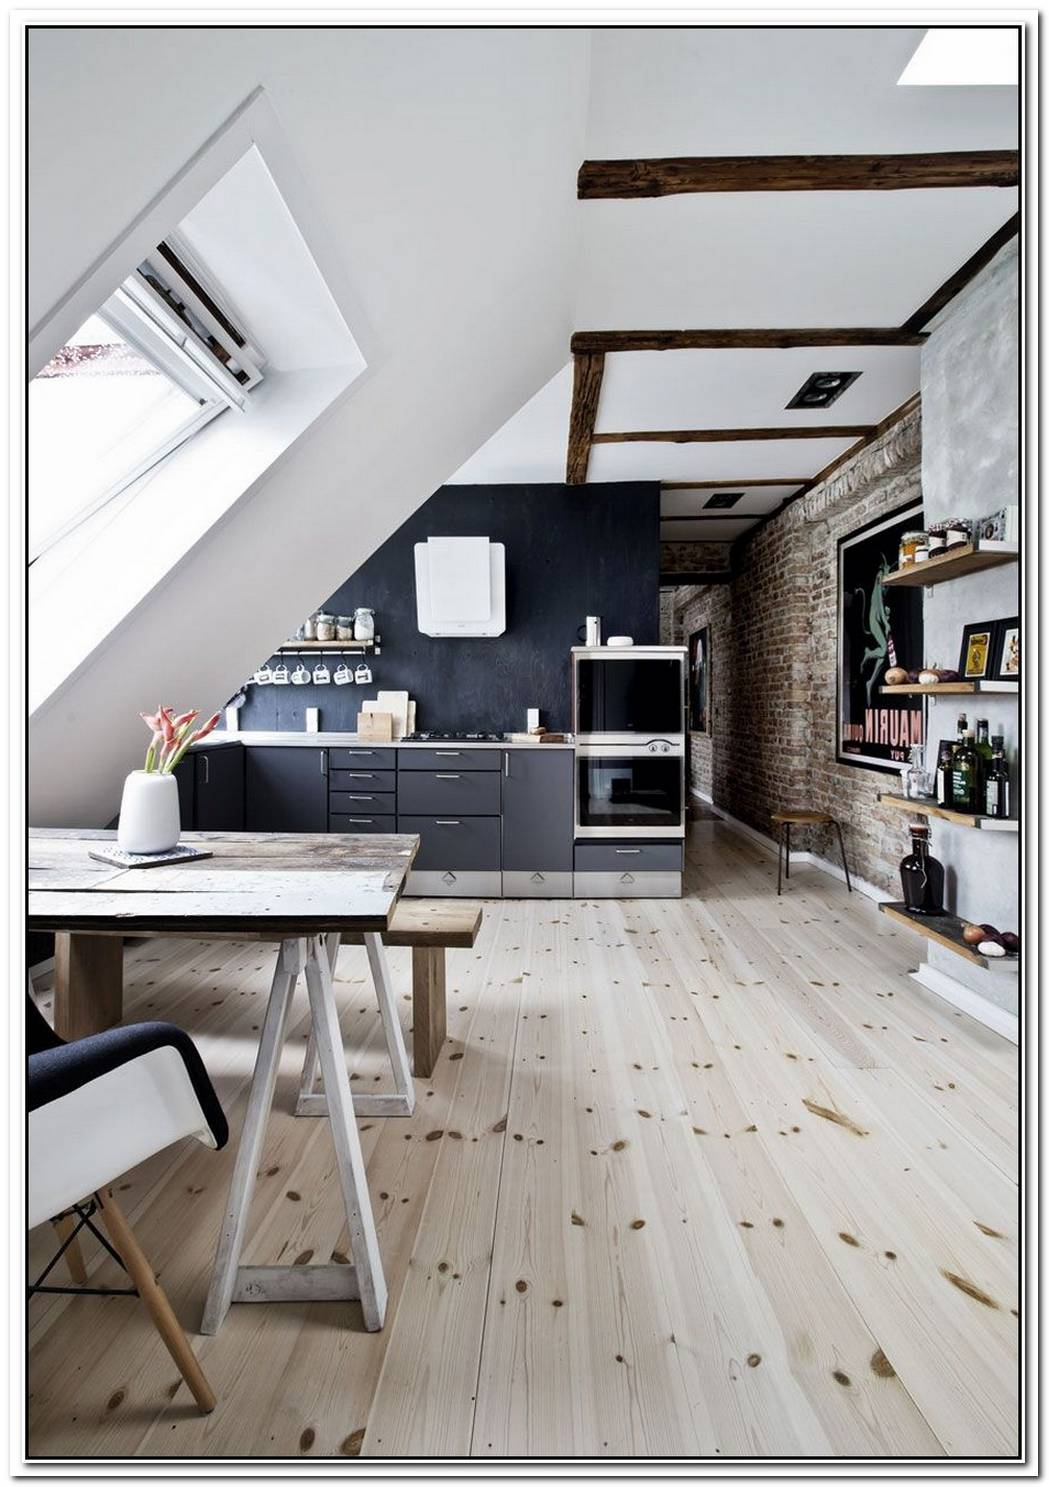 A 55 Sqm Attic Apartment With A Fresh Scandinavian Interior